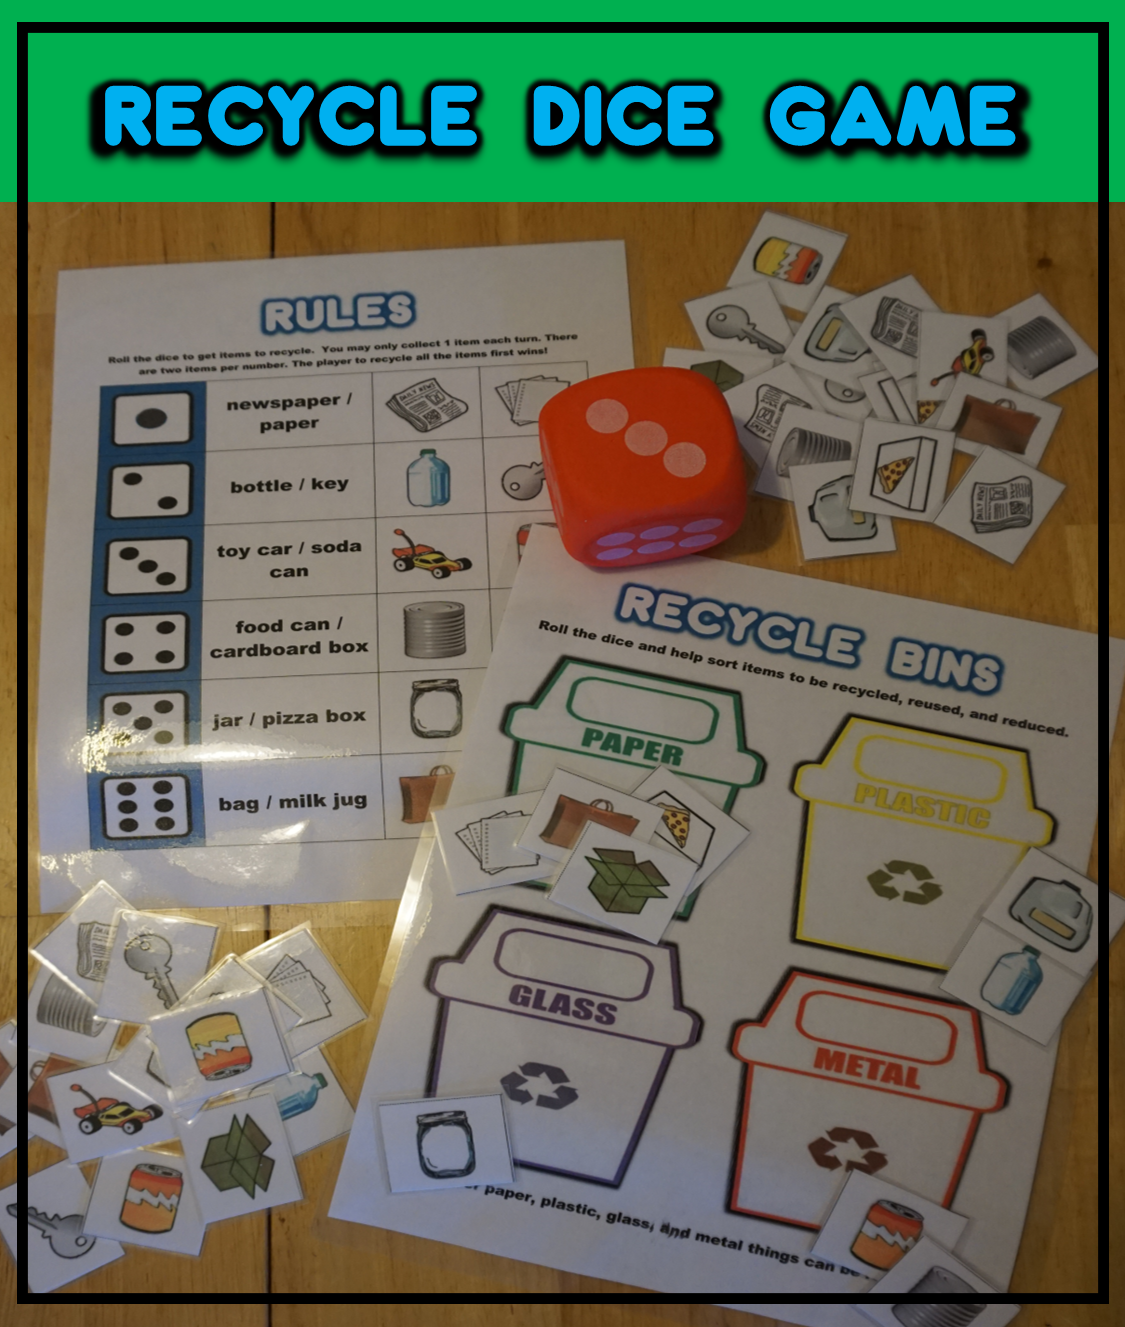 Recycle Dice Game Dice games, Recycling, Games